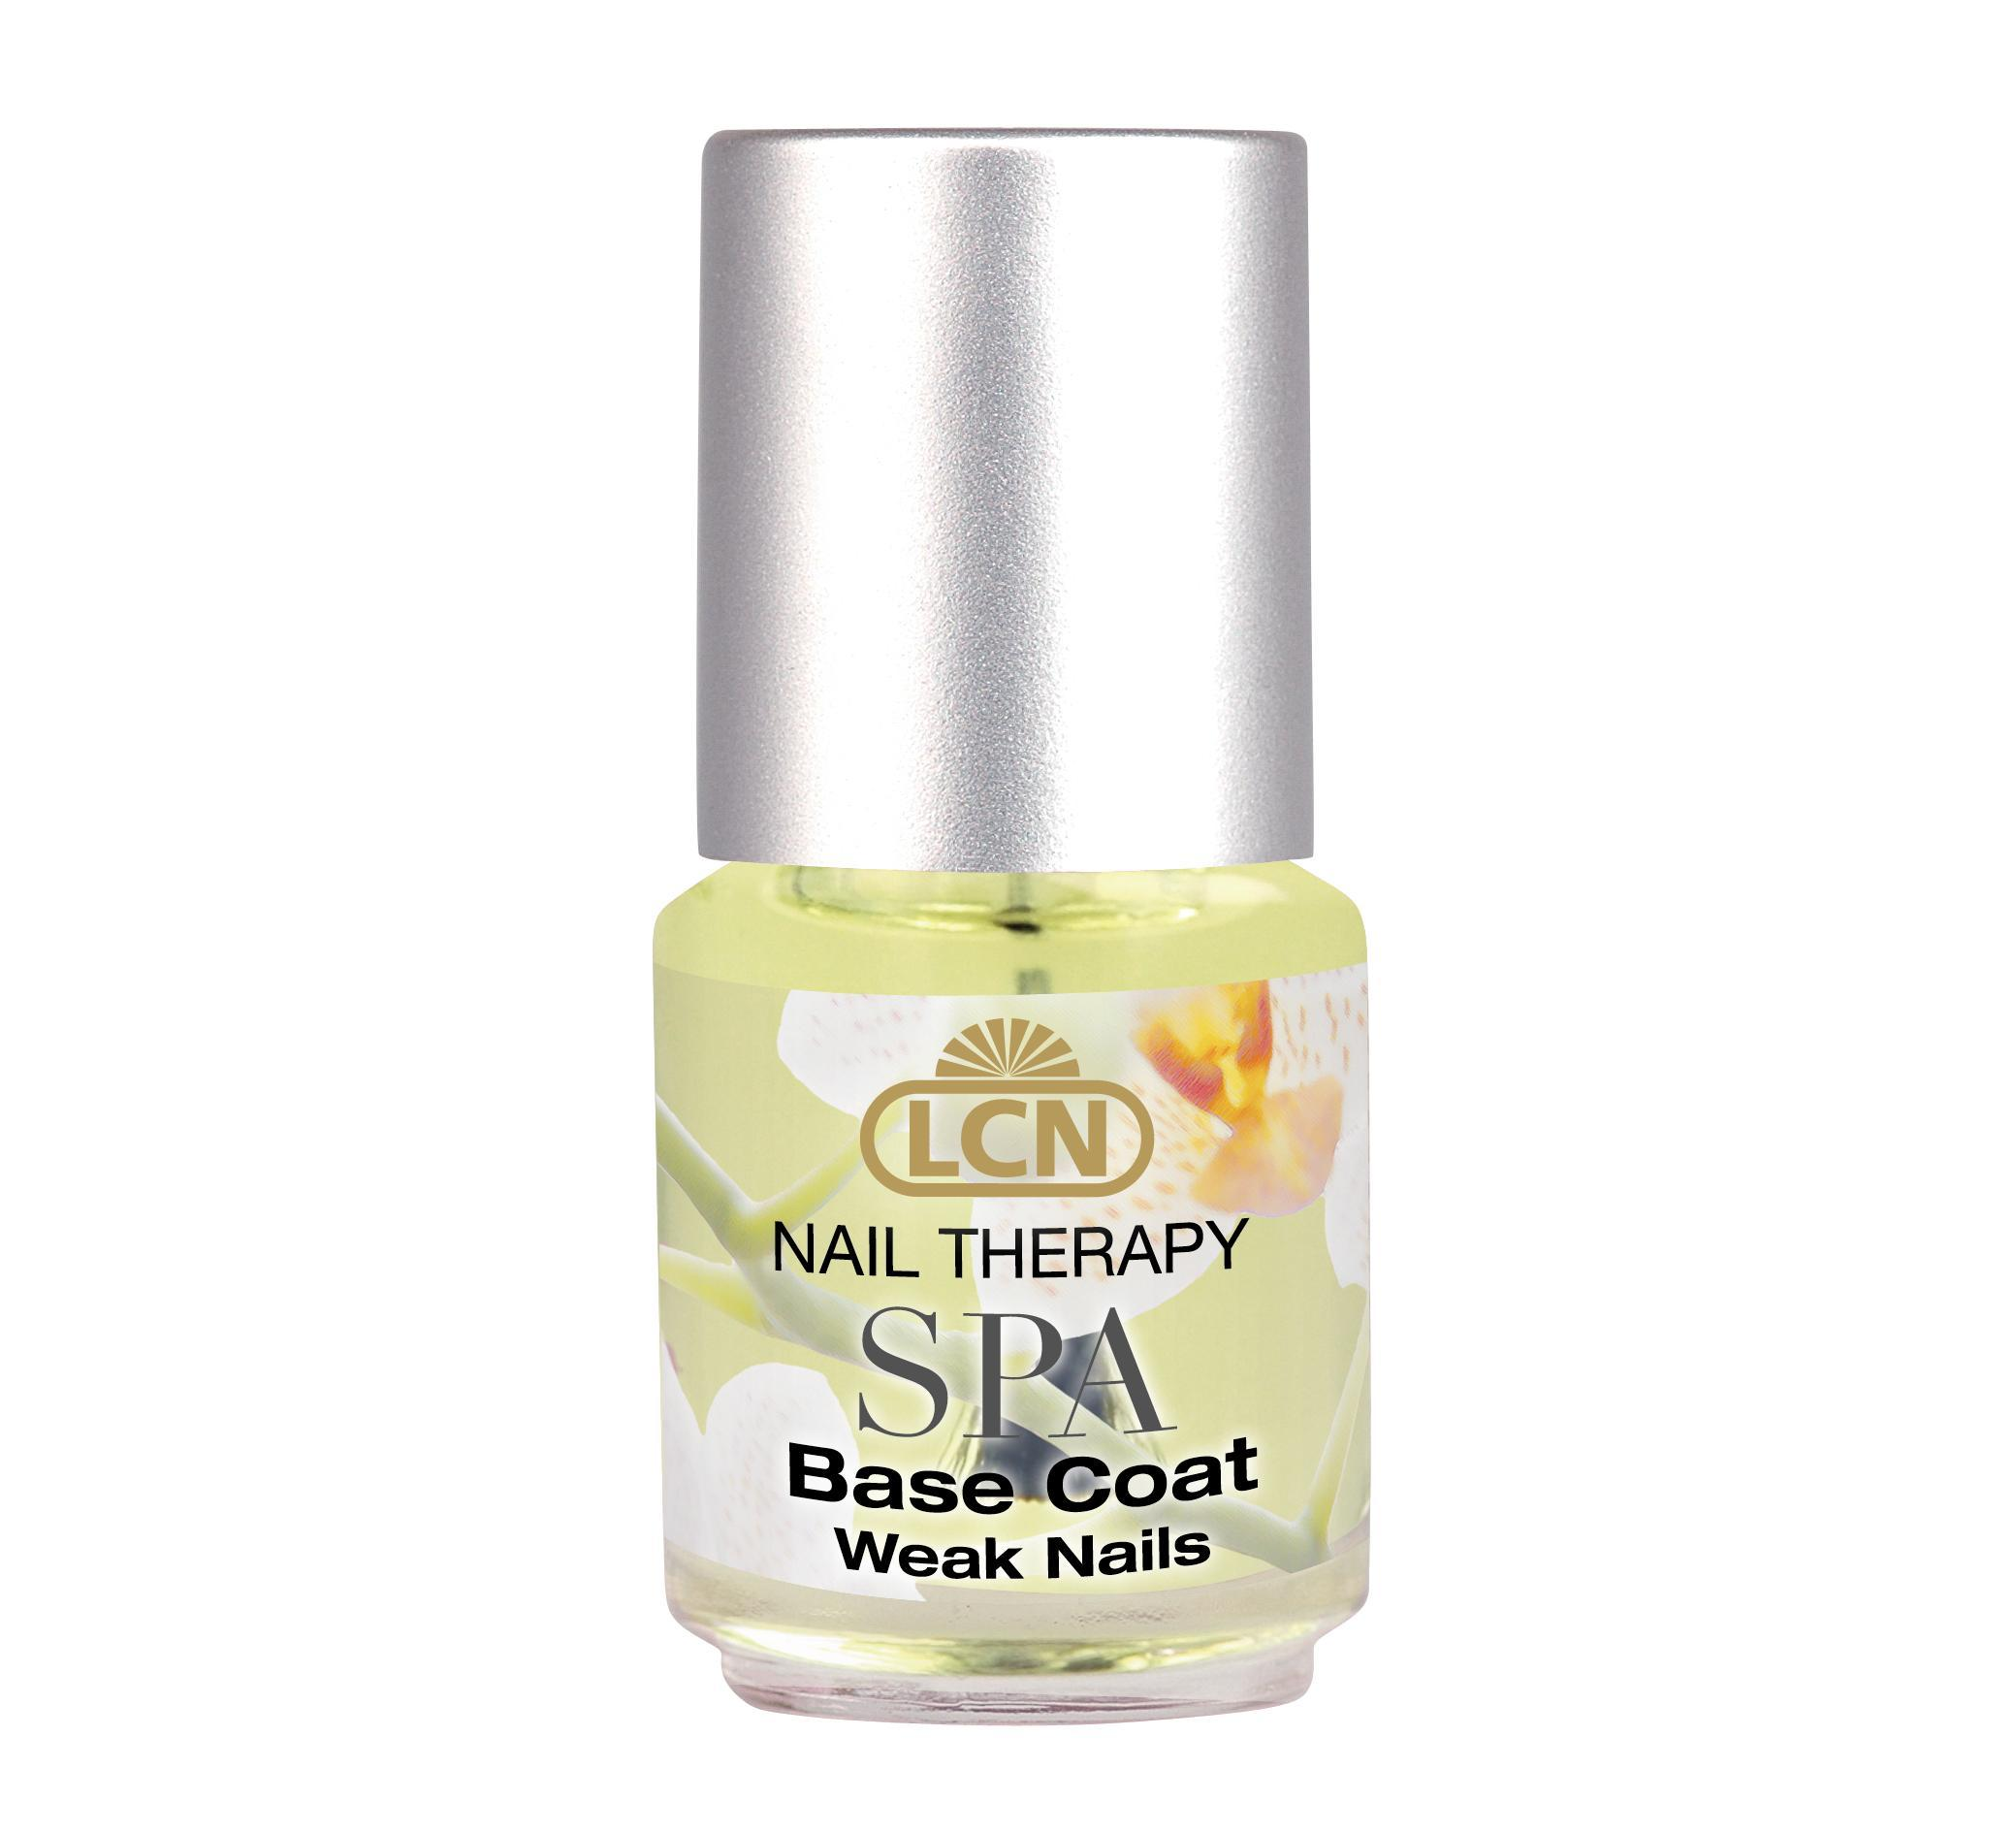 SPA Nail Therapy Base Coat, weak nails